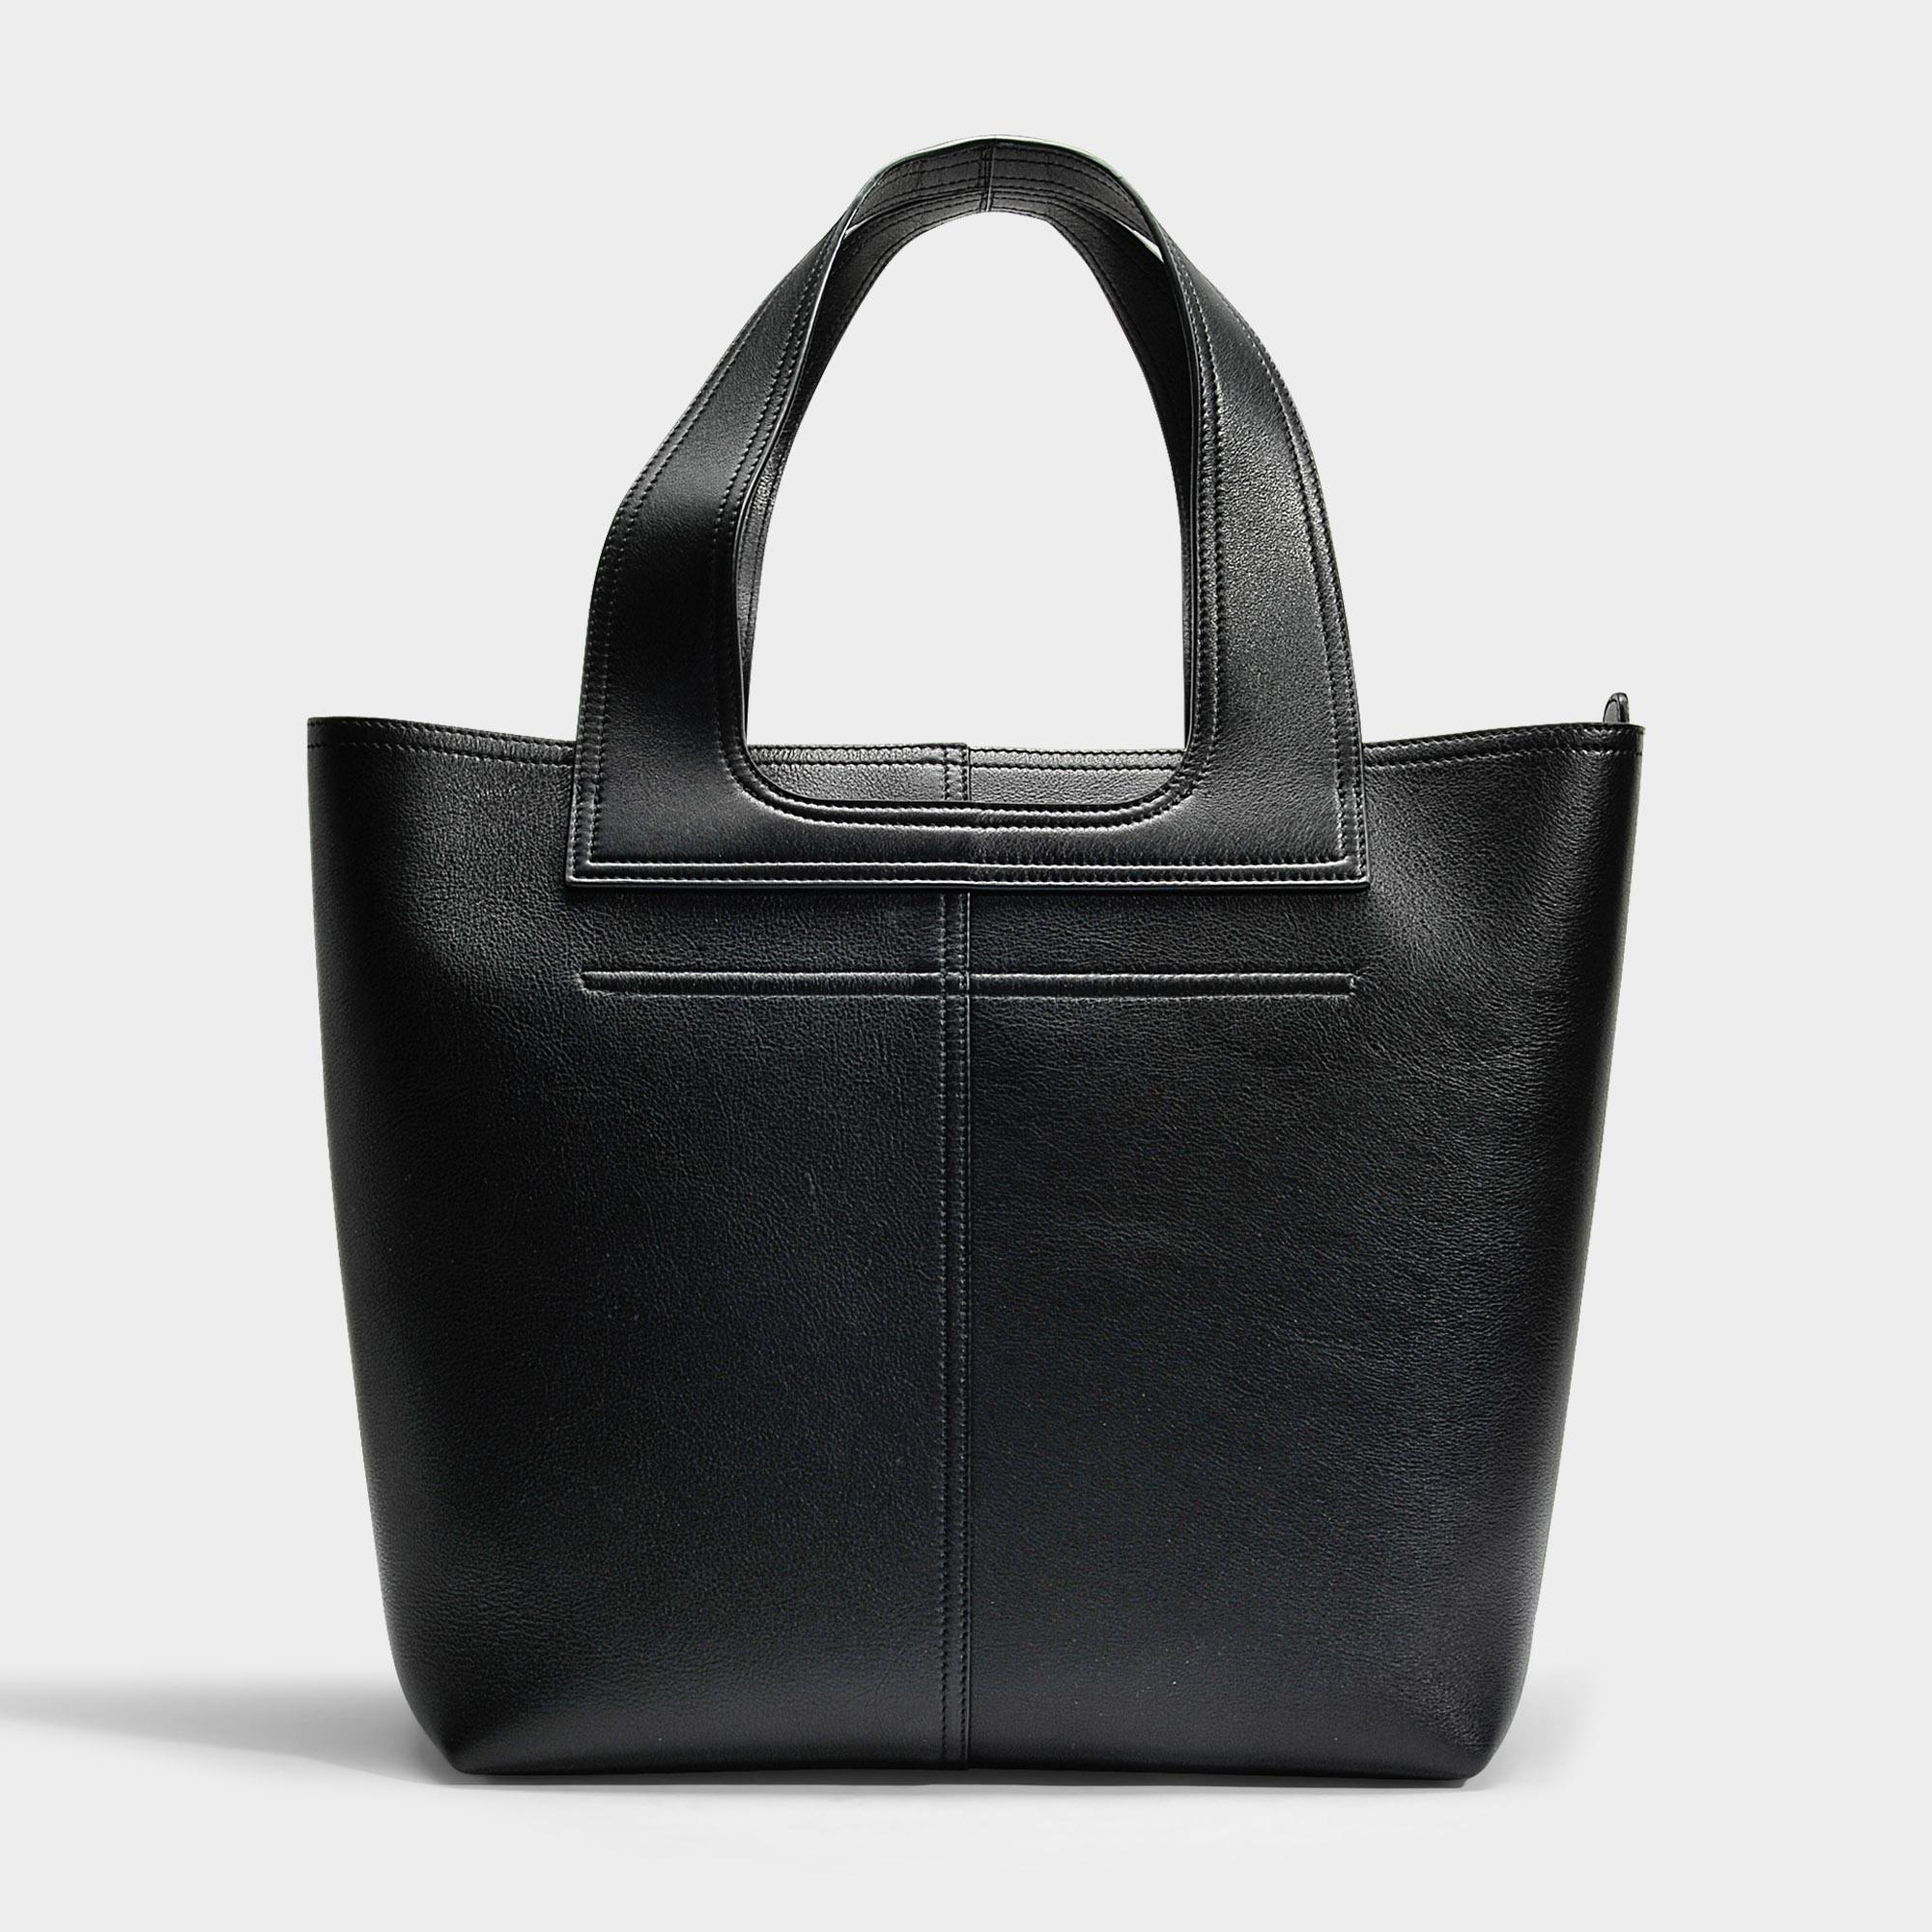 Apron Tote Bag in Black Celtic Calfskin Victoria Beckham f06hZ